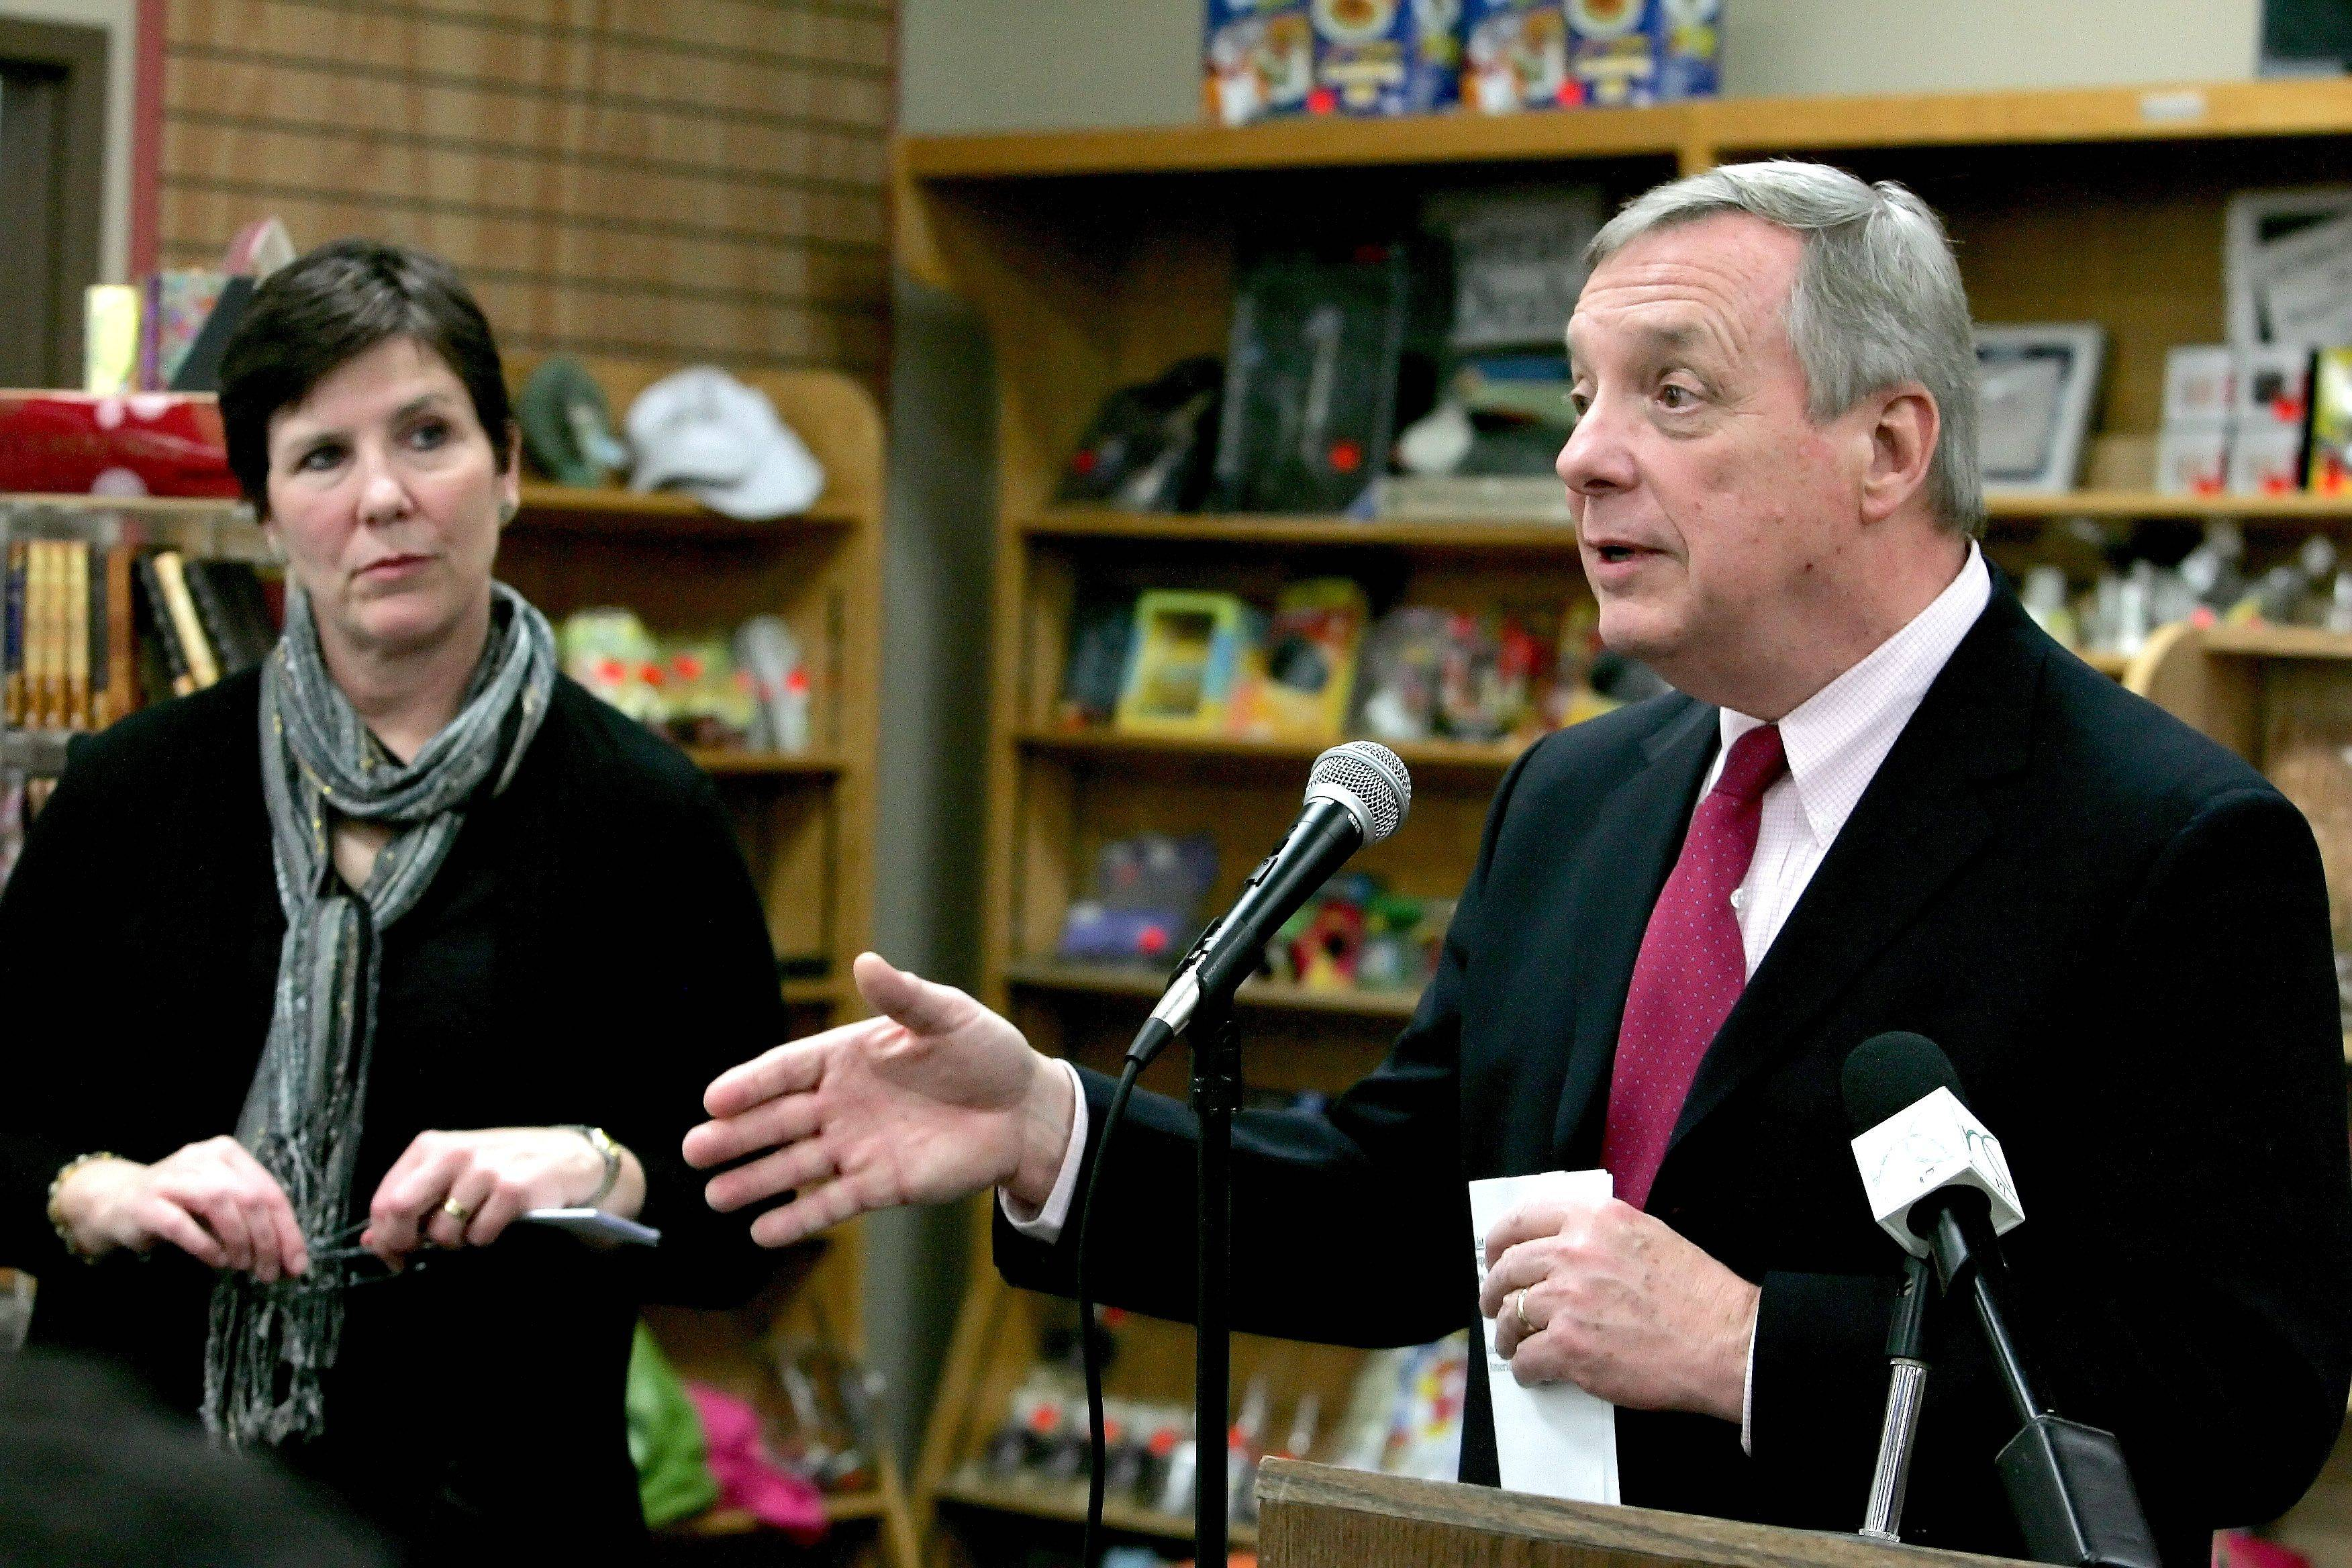 "Becky Anderson, co-owner of Anderson's Bookshop in downtown Naperville, listens as U.S. Sen. Dick Durbin speaks Friday about the Marketplace Fairness Act. The proposal aims to level the playing field between online and ""bricks and mortar"" merchants by allowing states to require online retailers to collect sales tax."